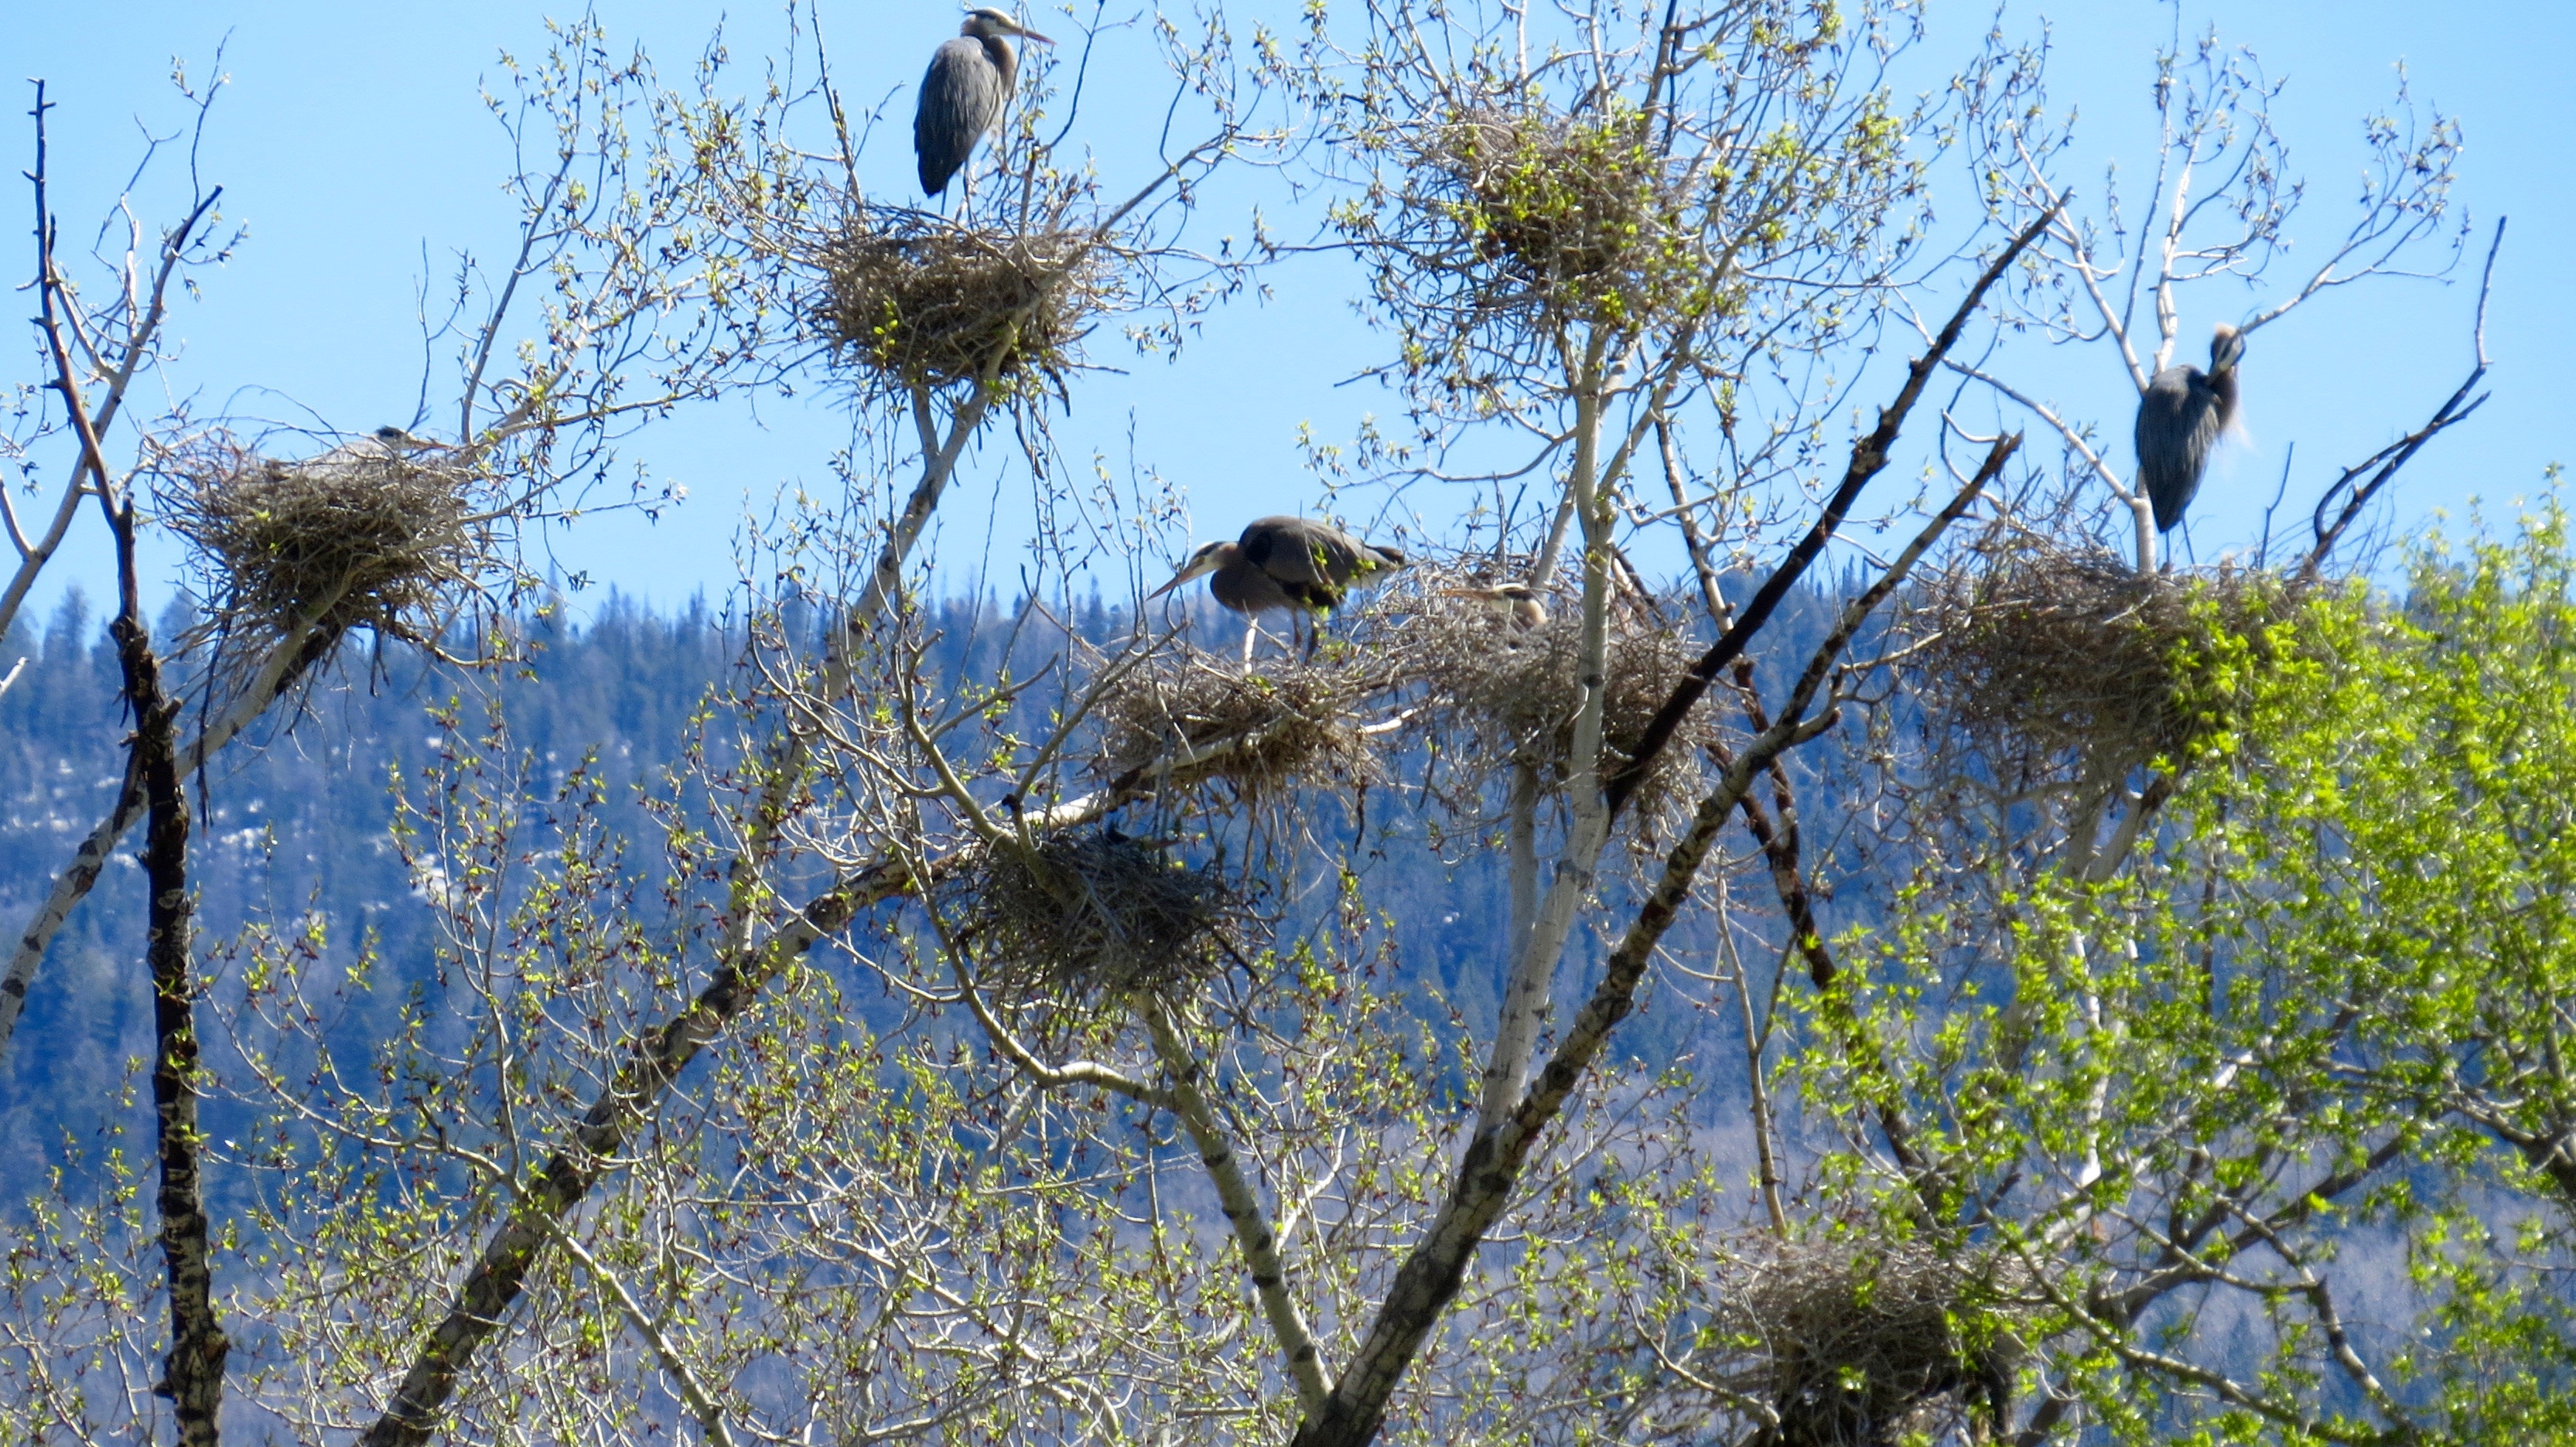 The Great Blue Herons' rookery at Rock Bottom Ranch near Carbondale is thriving.